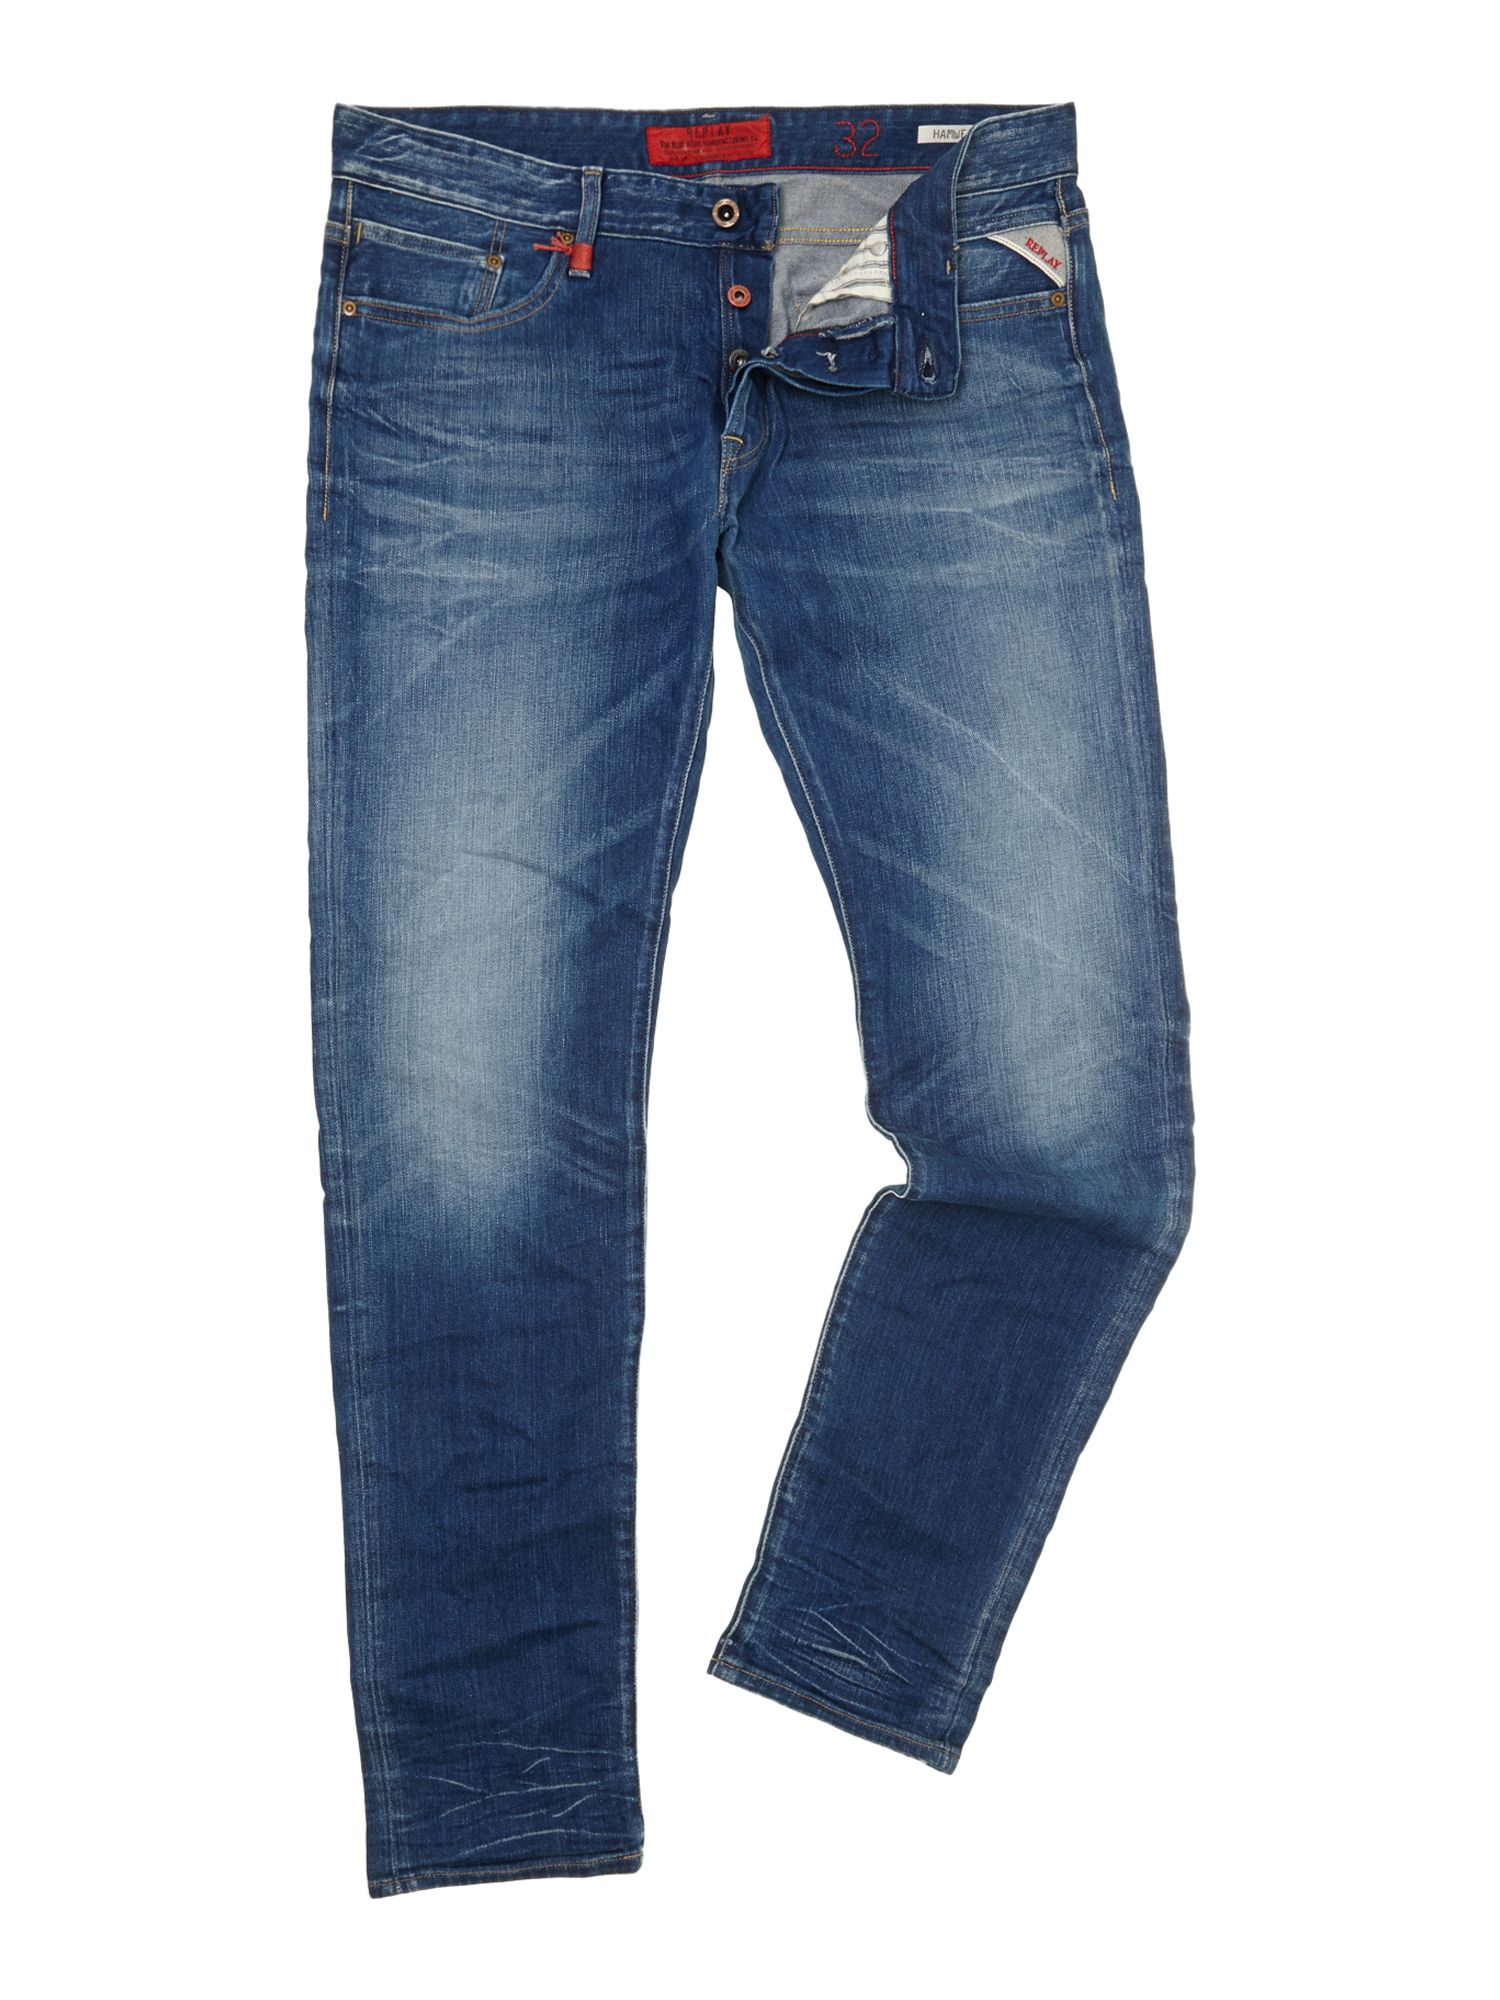 Hamwell denim jeans, tight fit